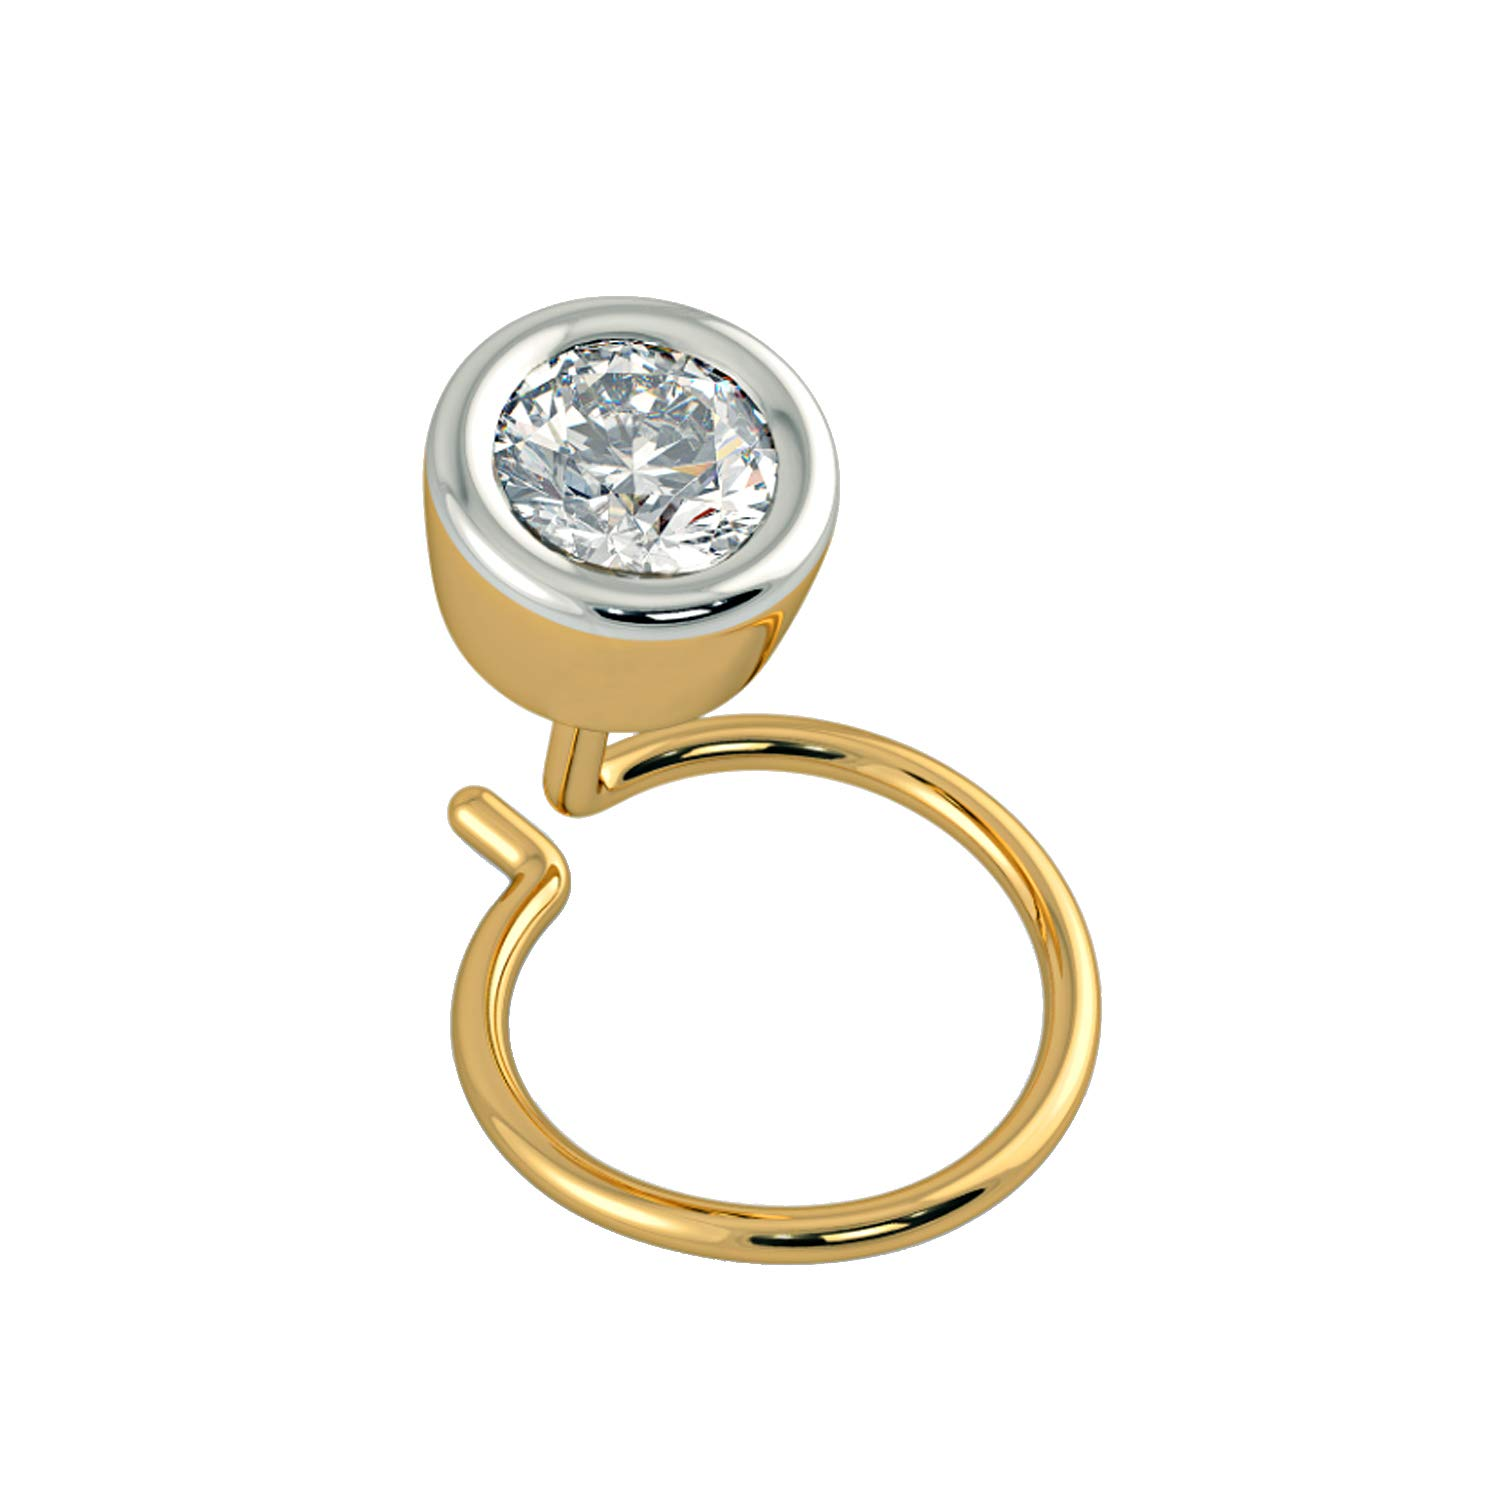 House of Kanak LLC 0.10 Ct Natural Diamond 14K Yellow Gold Nose Body Piercing Stud Pin with Back Side Wire